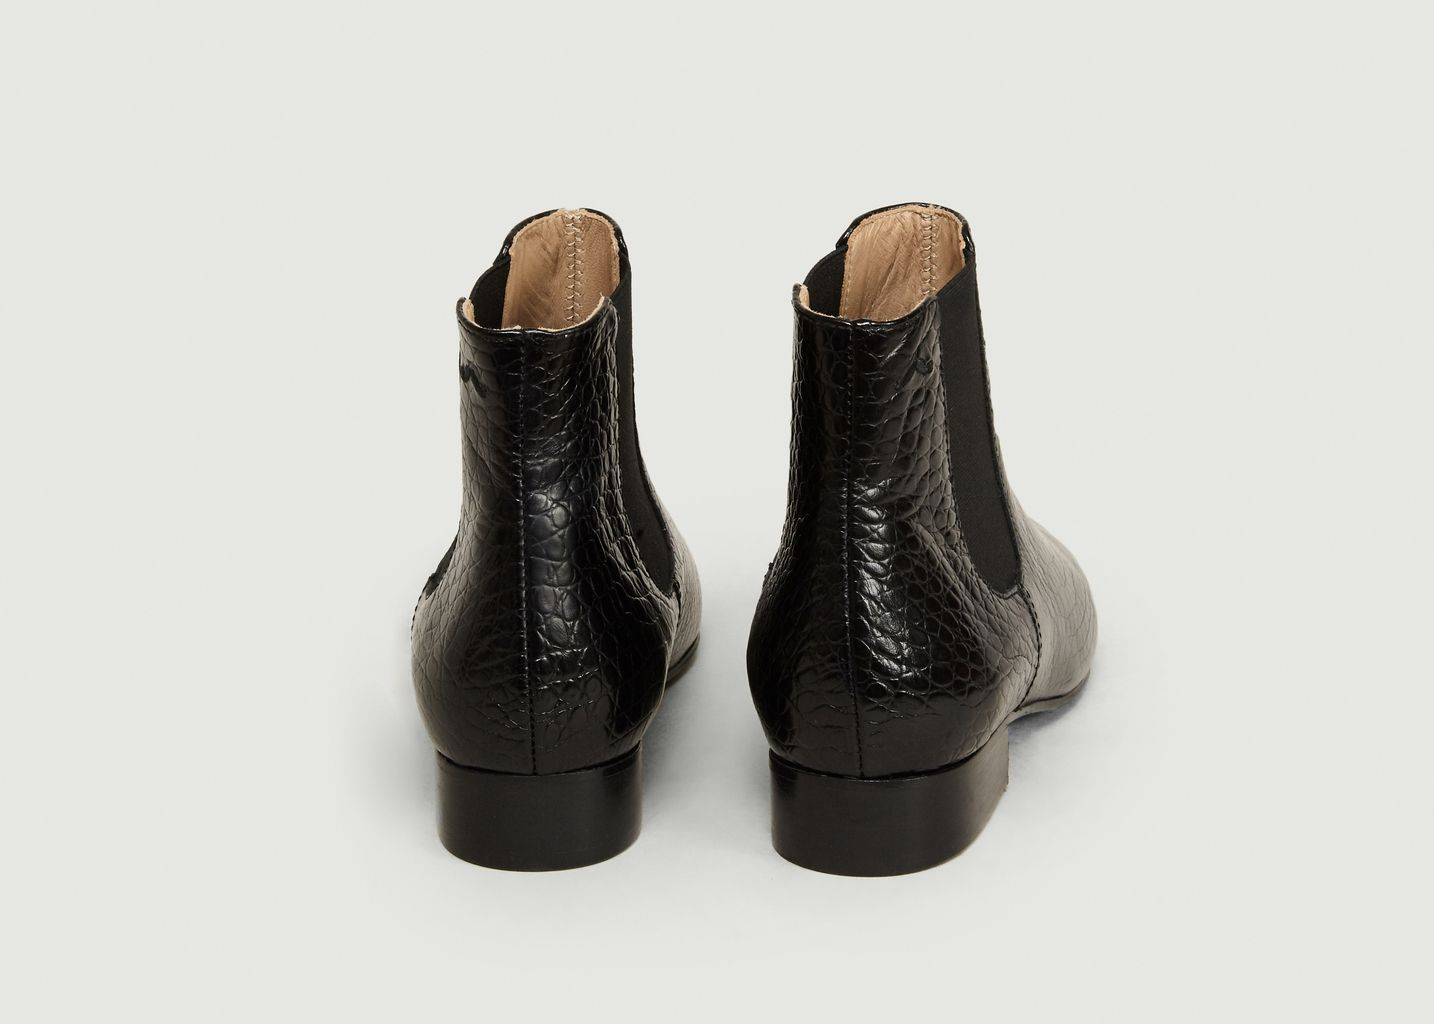 Bottines Camille B. - M. Moustache